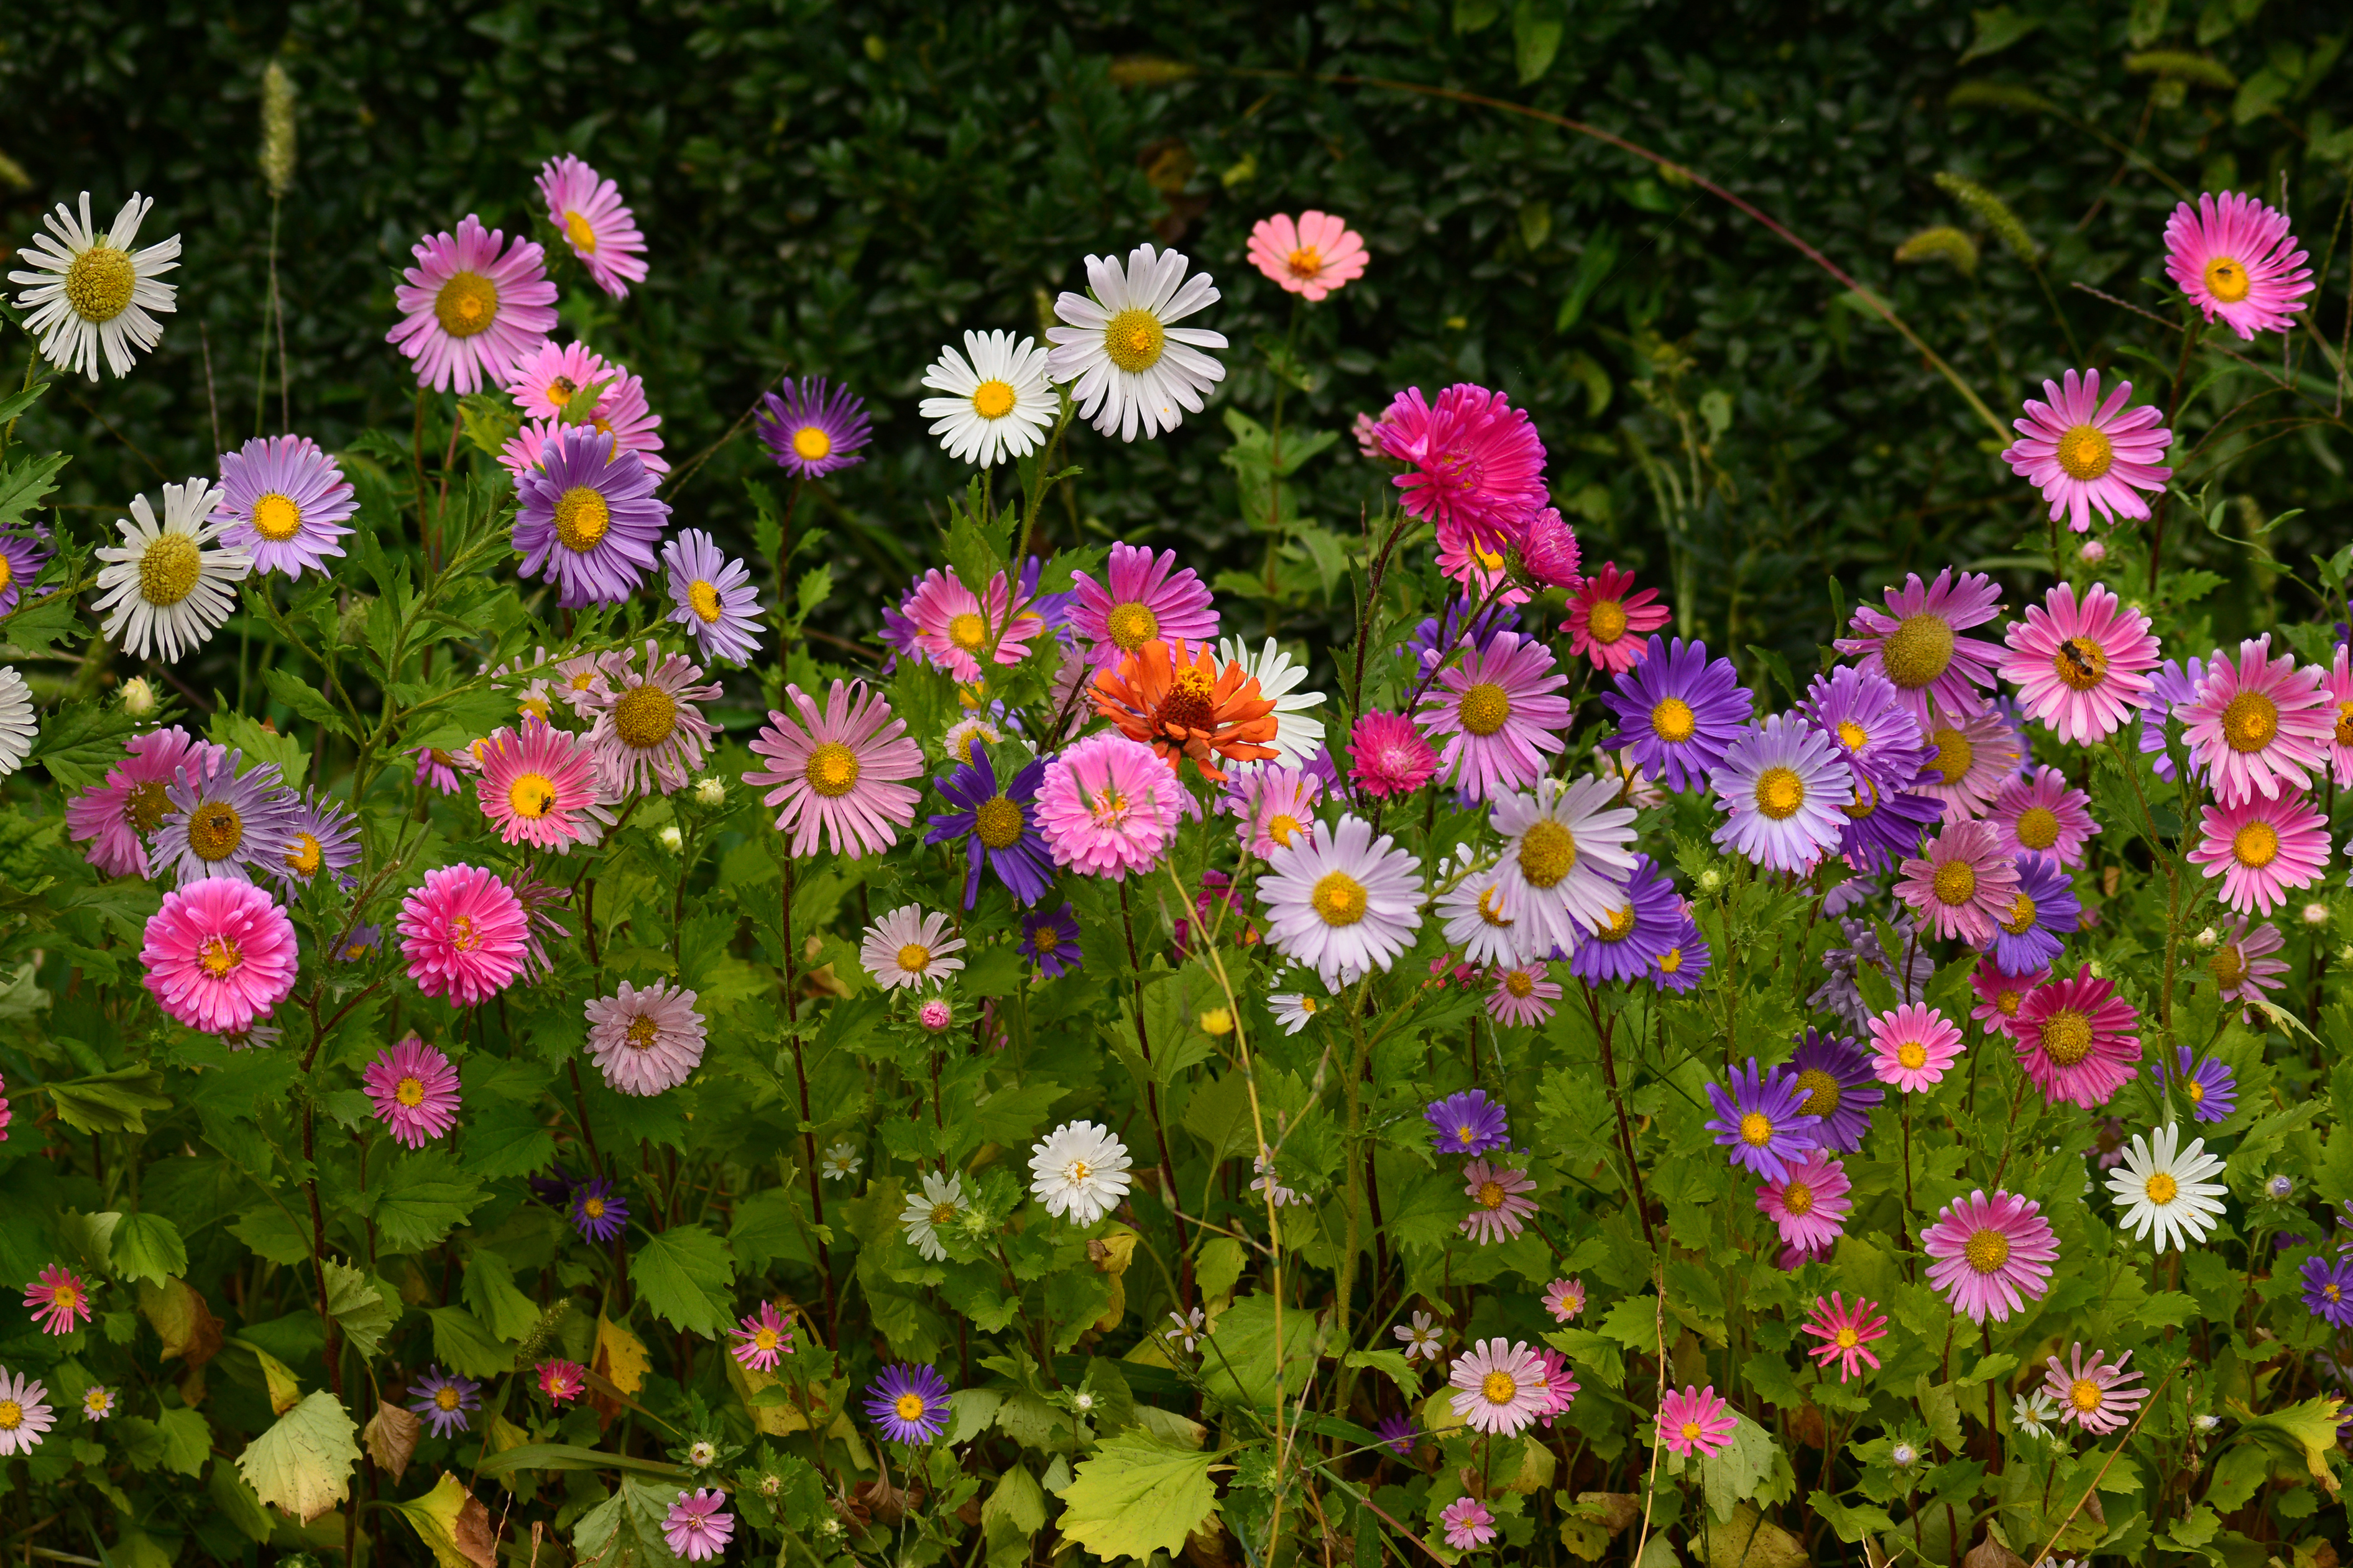 Fall blooming perennials 28 images perennial flower photo garden muses not another toronto - Fall blooming flowers ...